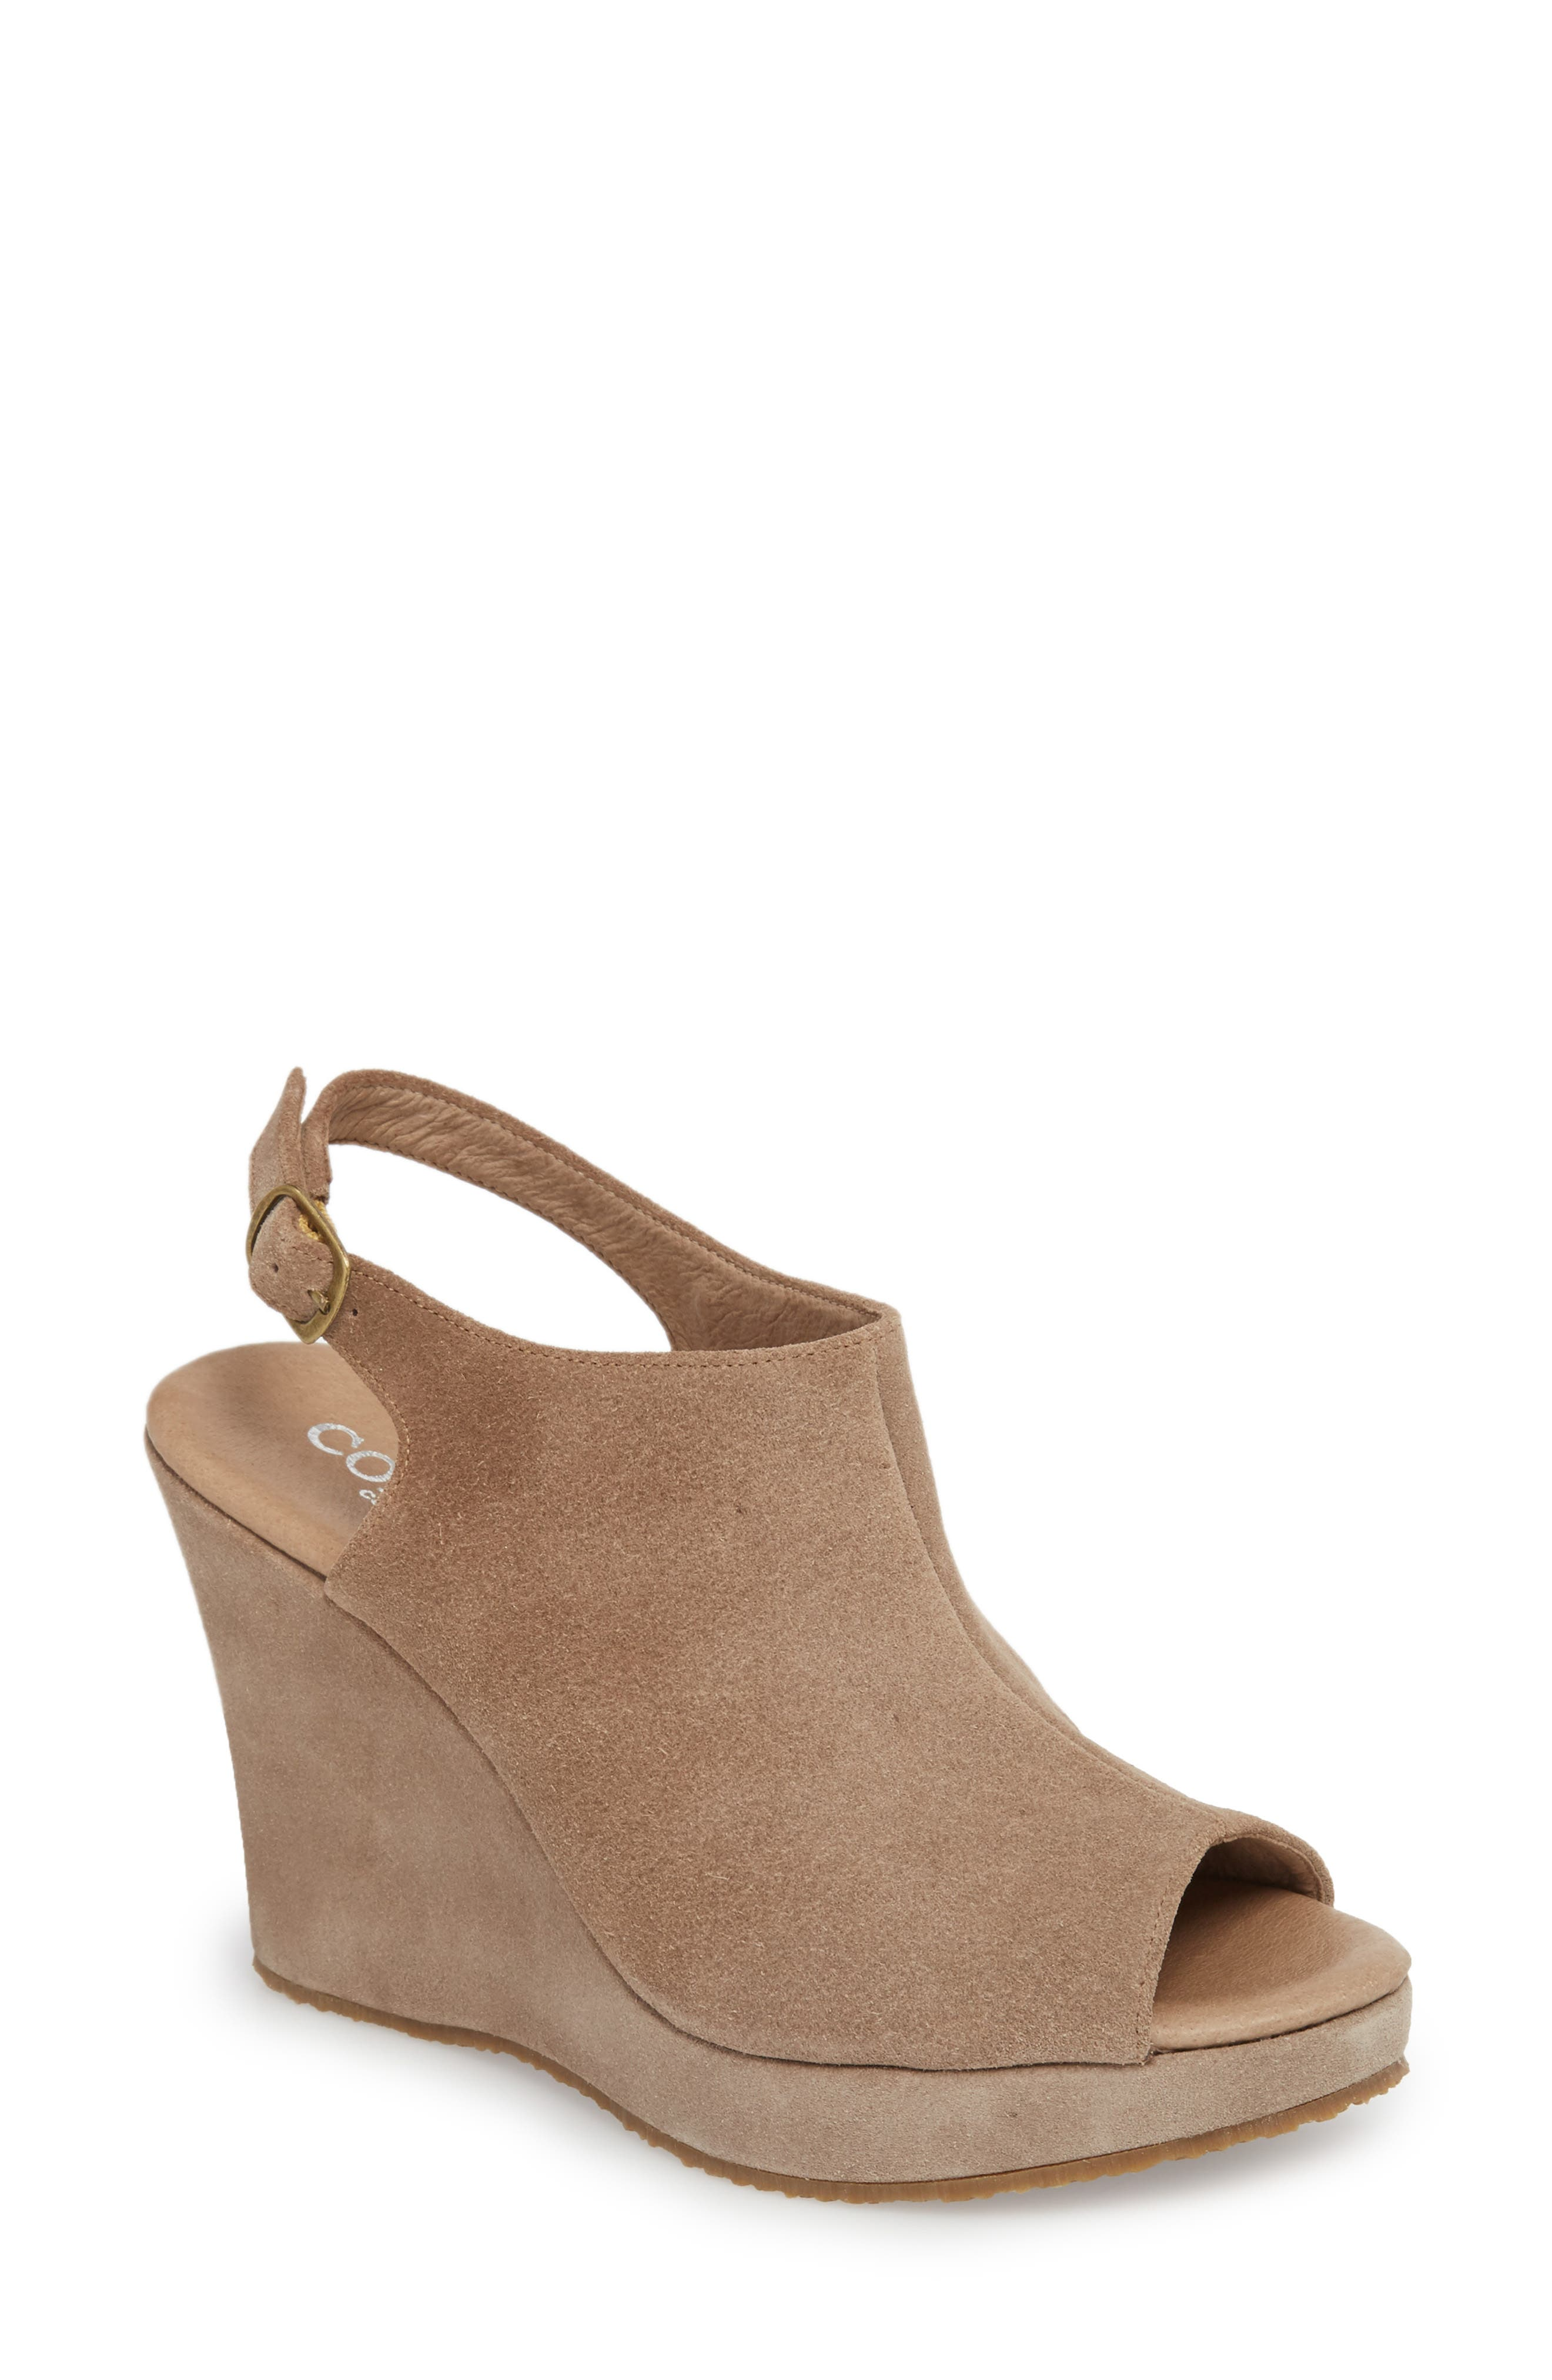 'Wellesley' Sandal,                         Main,                         color, Taupe Suede